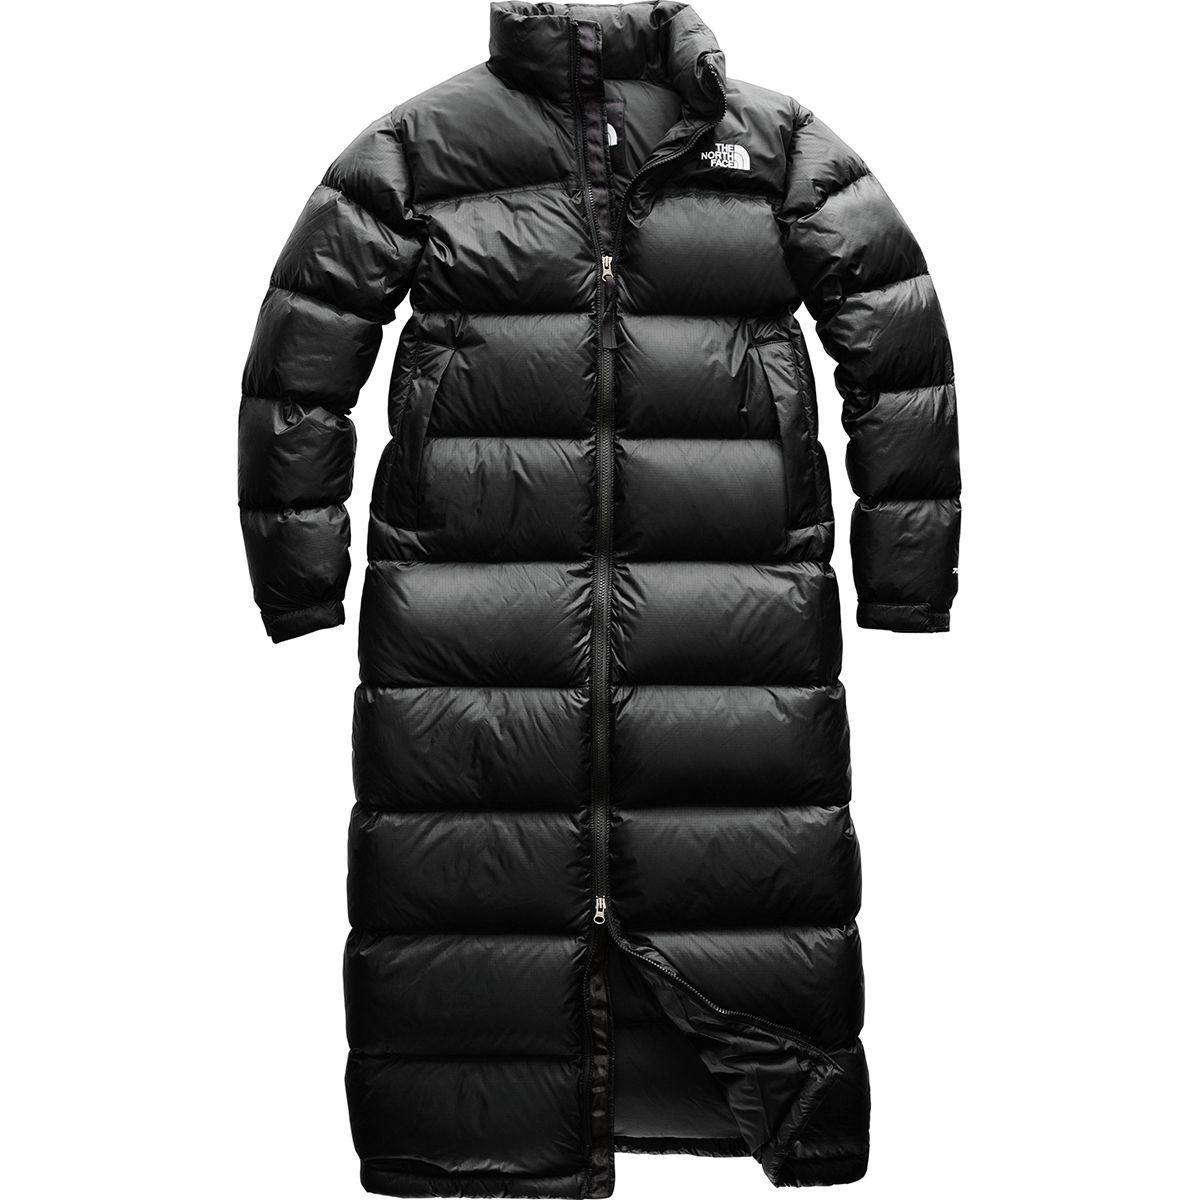 f808f7a91 where can i buy the north face backcountry vest for sale 4d189 70b07